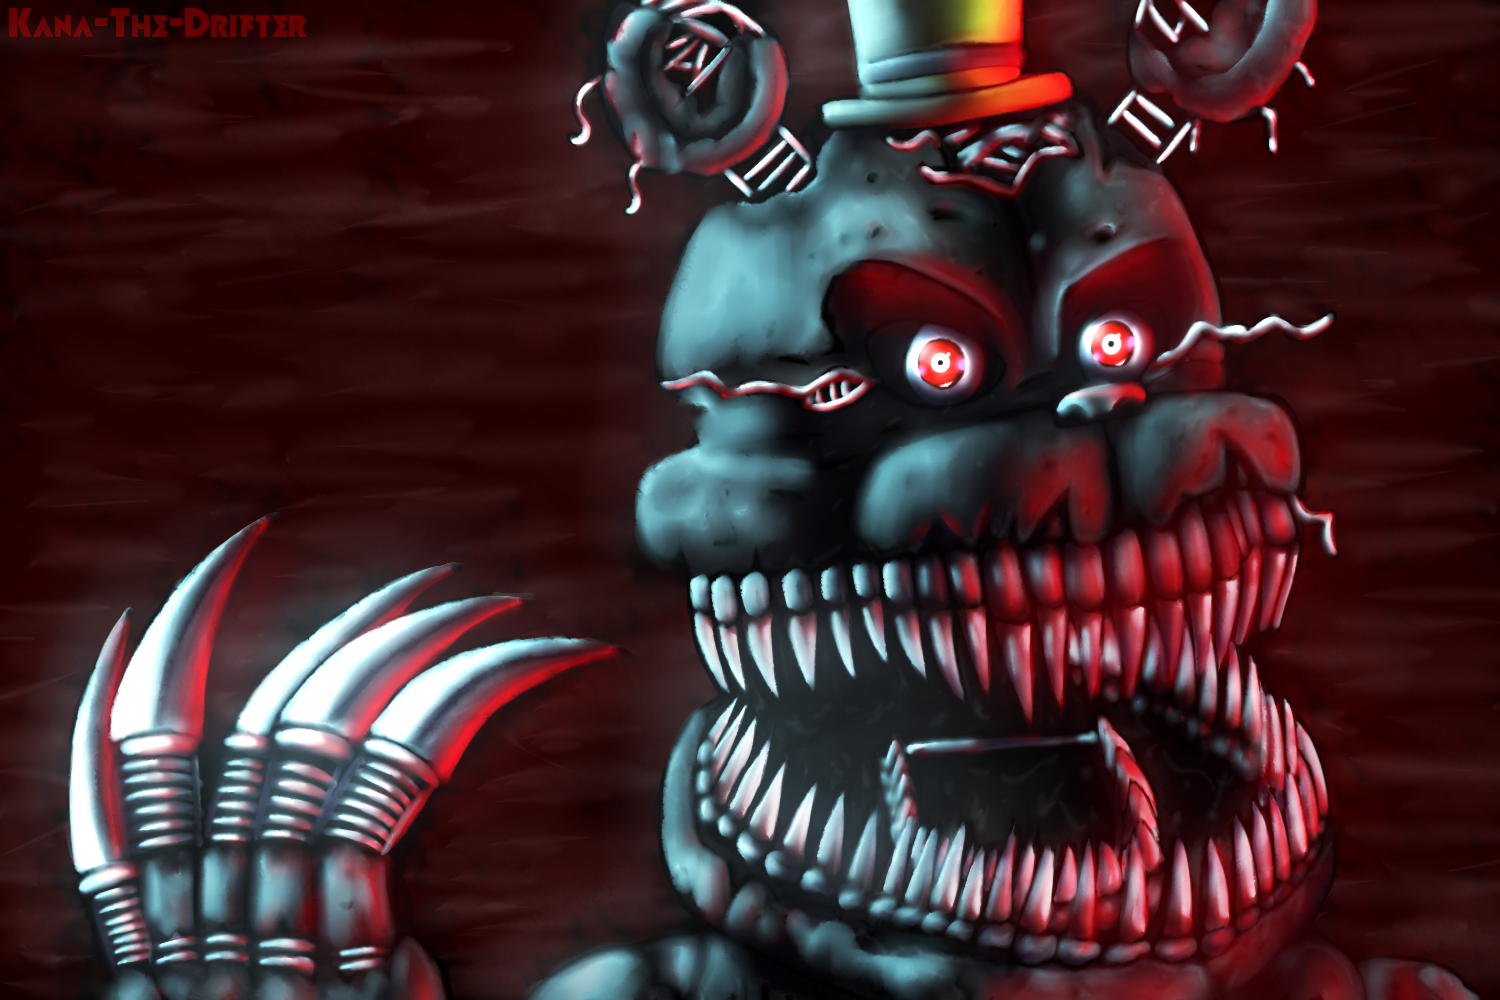 50+] FNAF Nightmare Wallpaper on WallpaperSafari